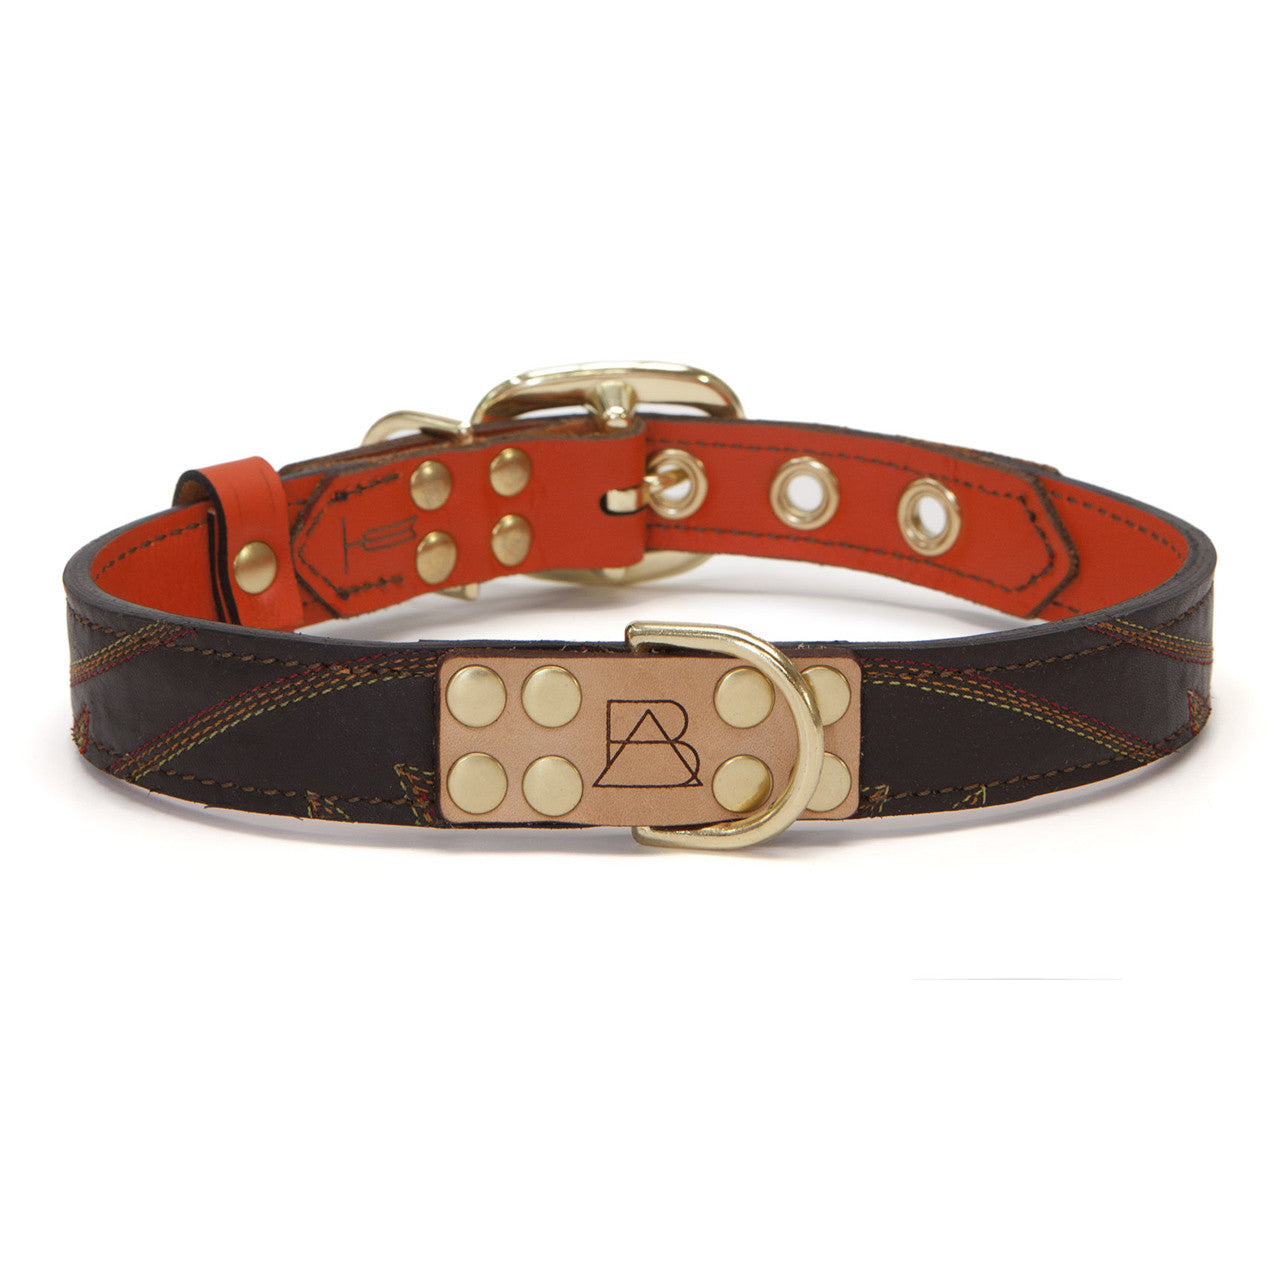 Orange Dog Collar with Medium Brown Leather + Multicolor Stitching (front view)